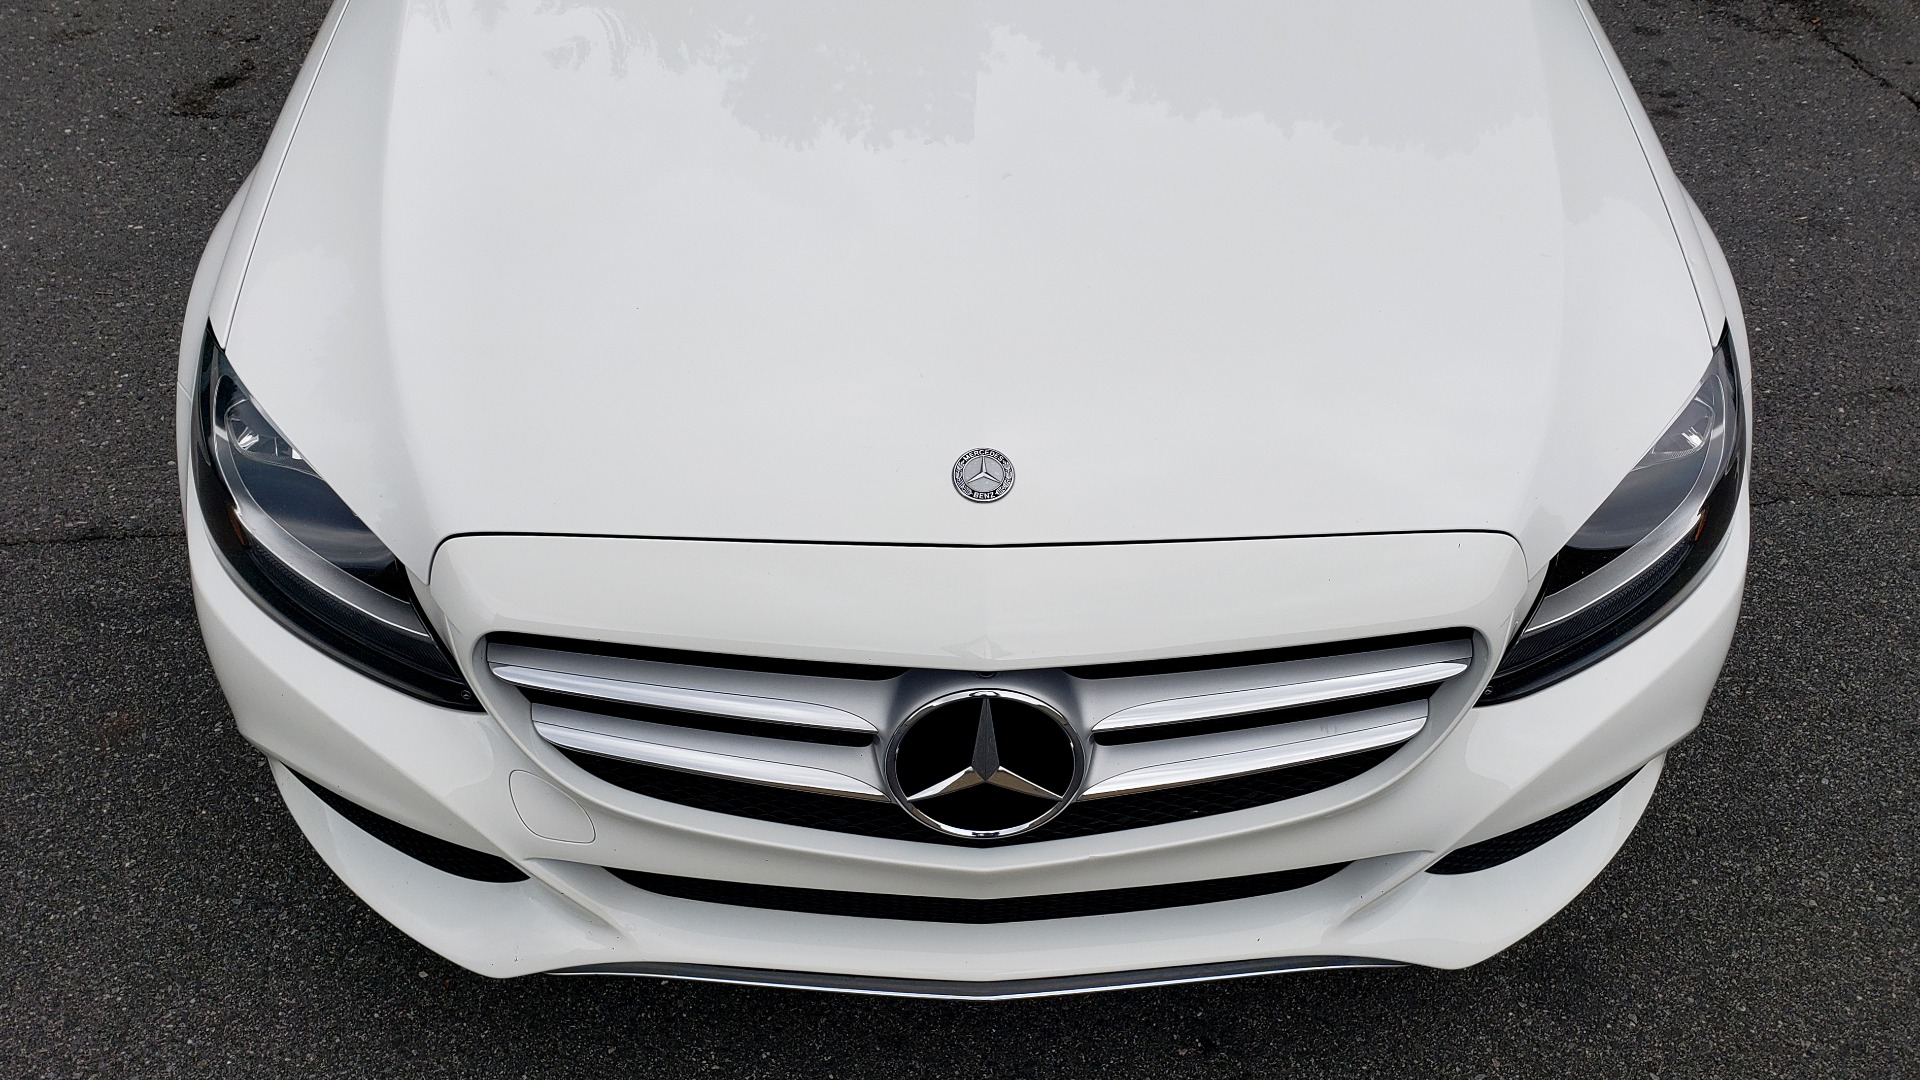 Used 2017 Mercedes-Benz C-CLASS C 300 PREMIUM SEDAN / NAV / PANO-ROOF / HTD STS / REARVIEW for sale Sold at Formula Imports in Charlotte NC 28227 25